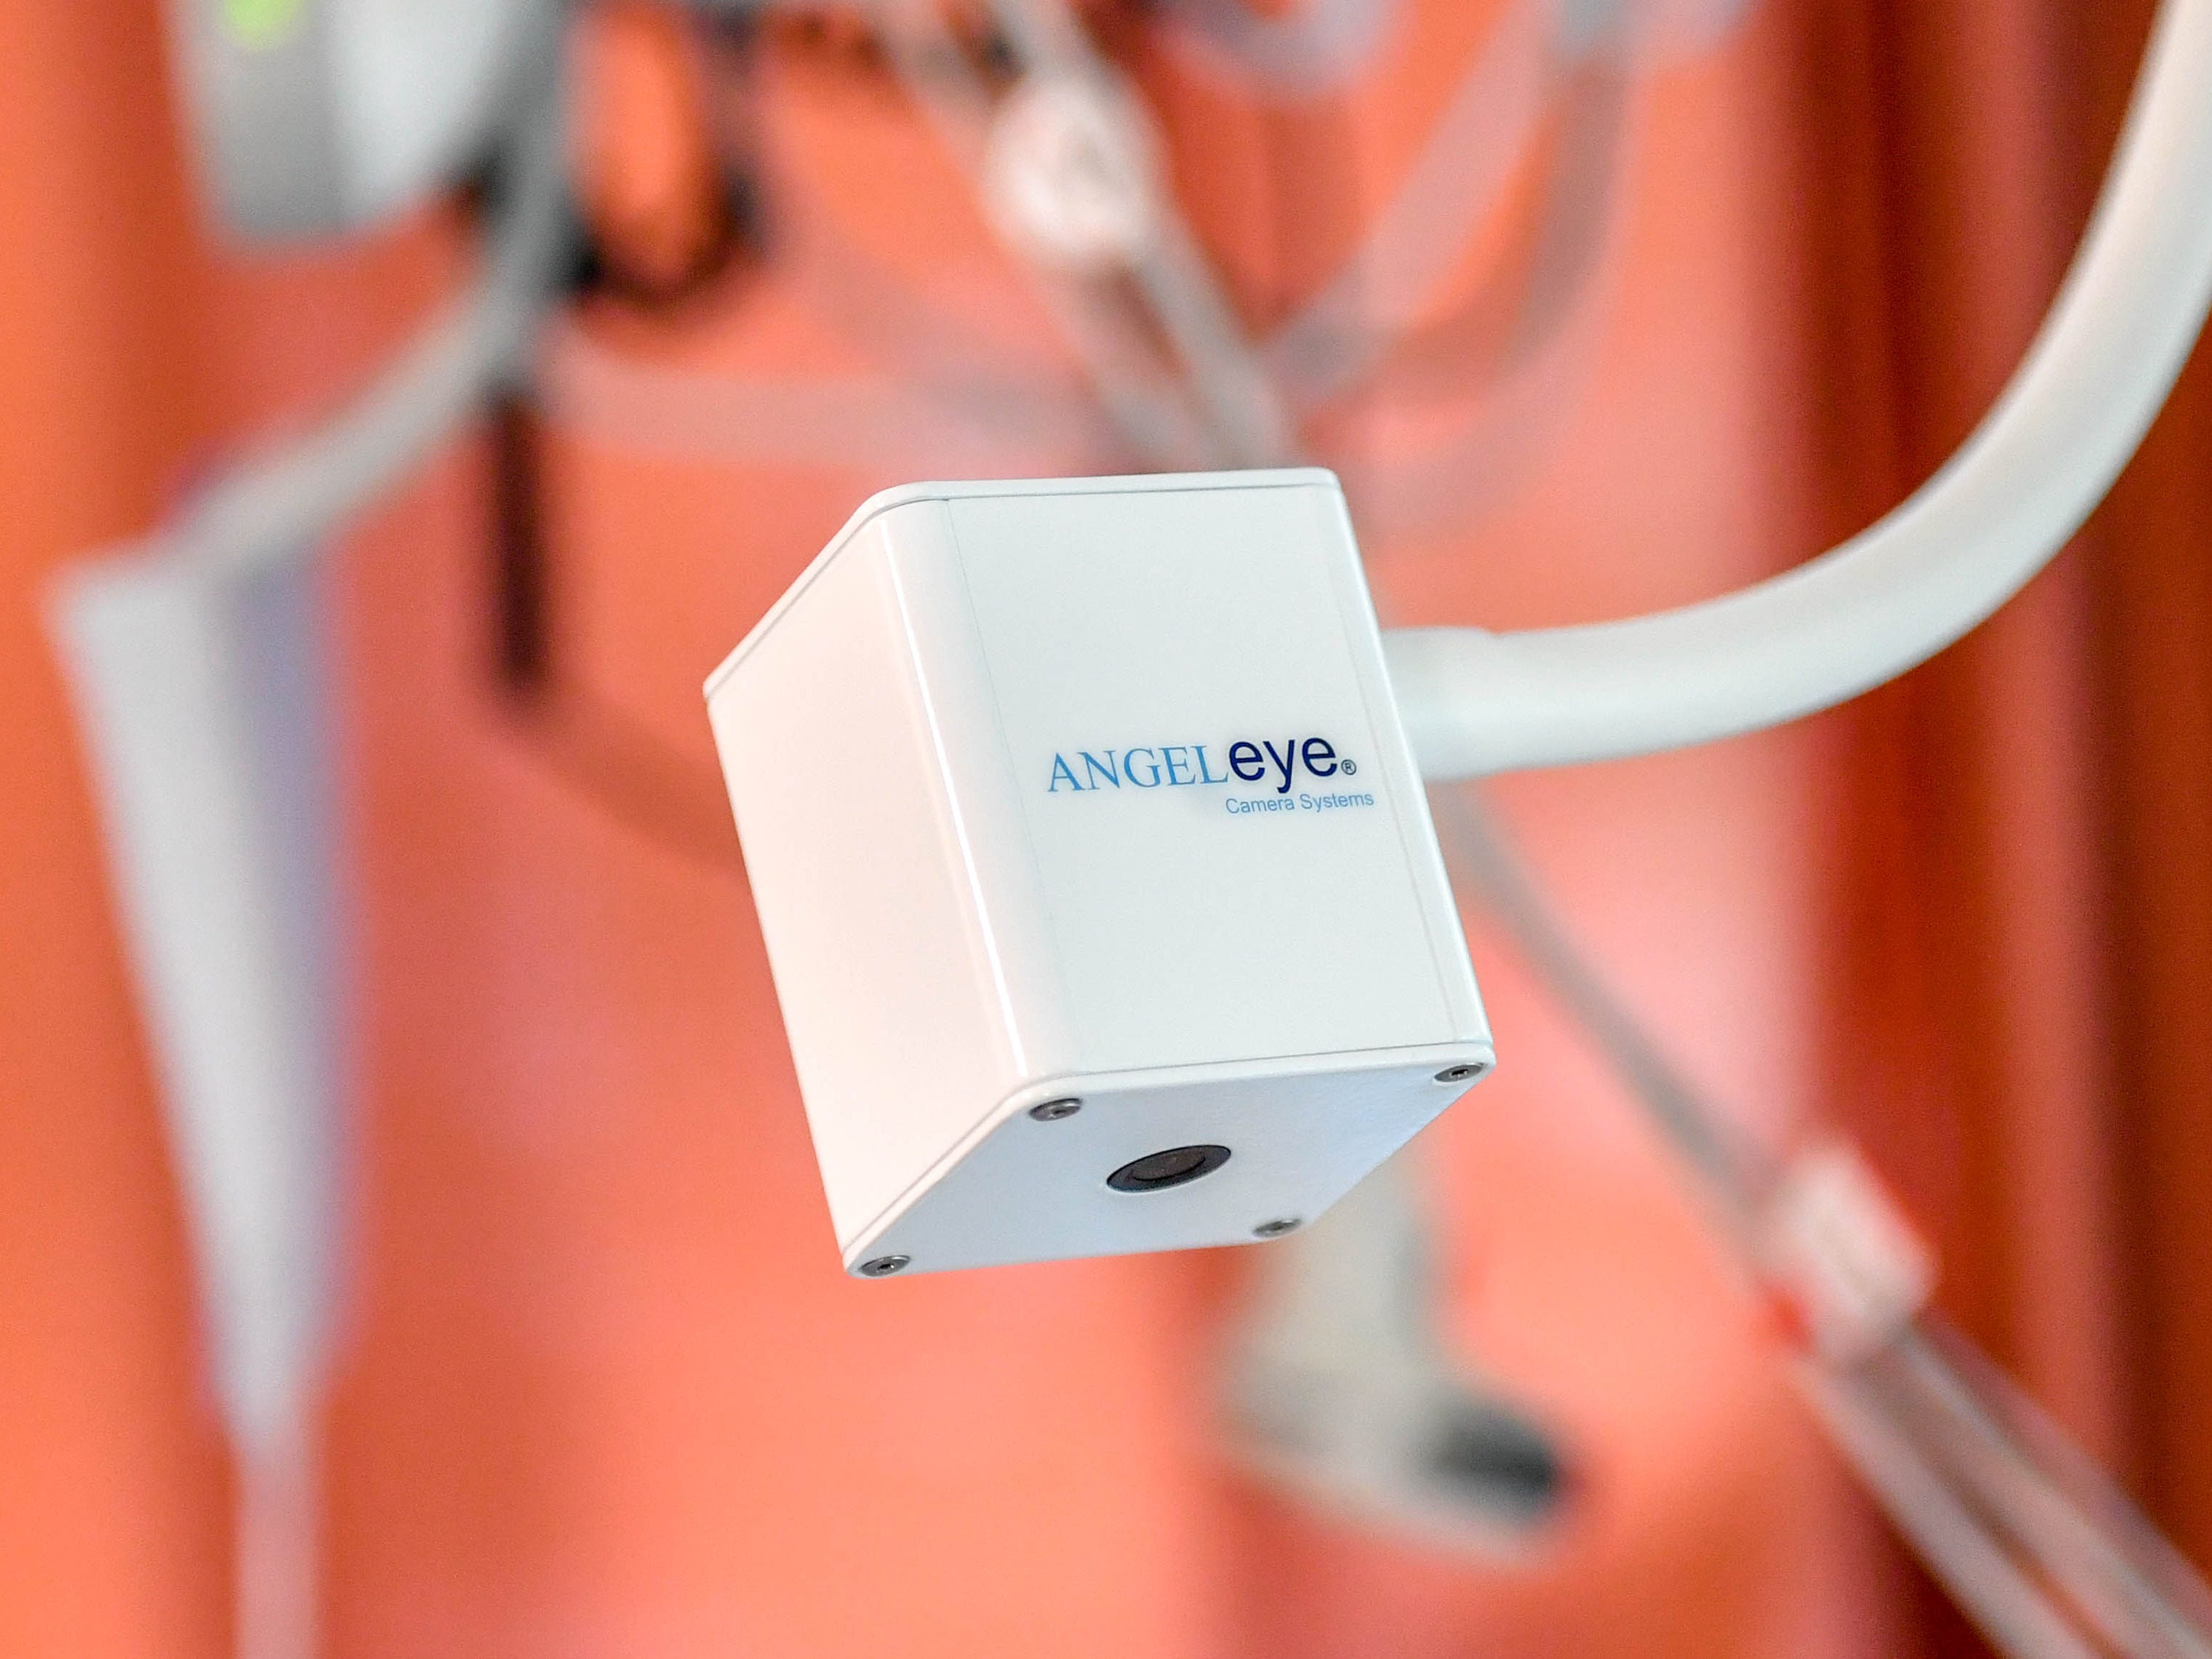 On September 11, 2018, WellSpan York Hospital's Neonatal Intensive Care Unit (NICU) implemented new Angel Eye cameras in the wing. They allow parents to view their babies 24/7 through a constant live-stream.